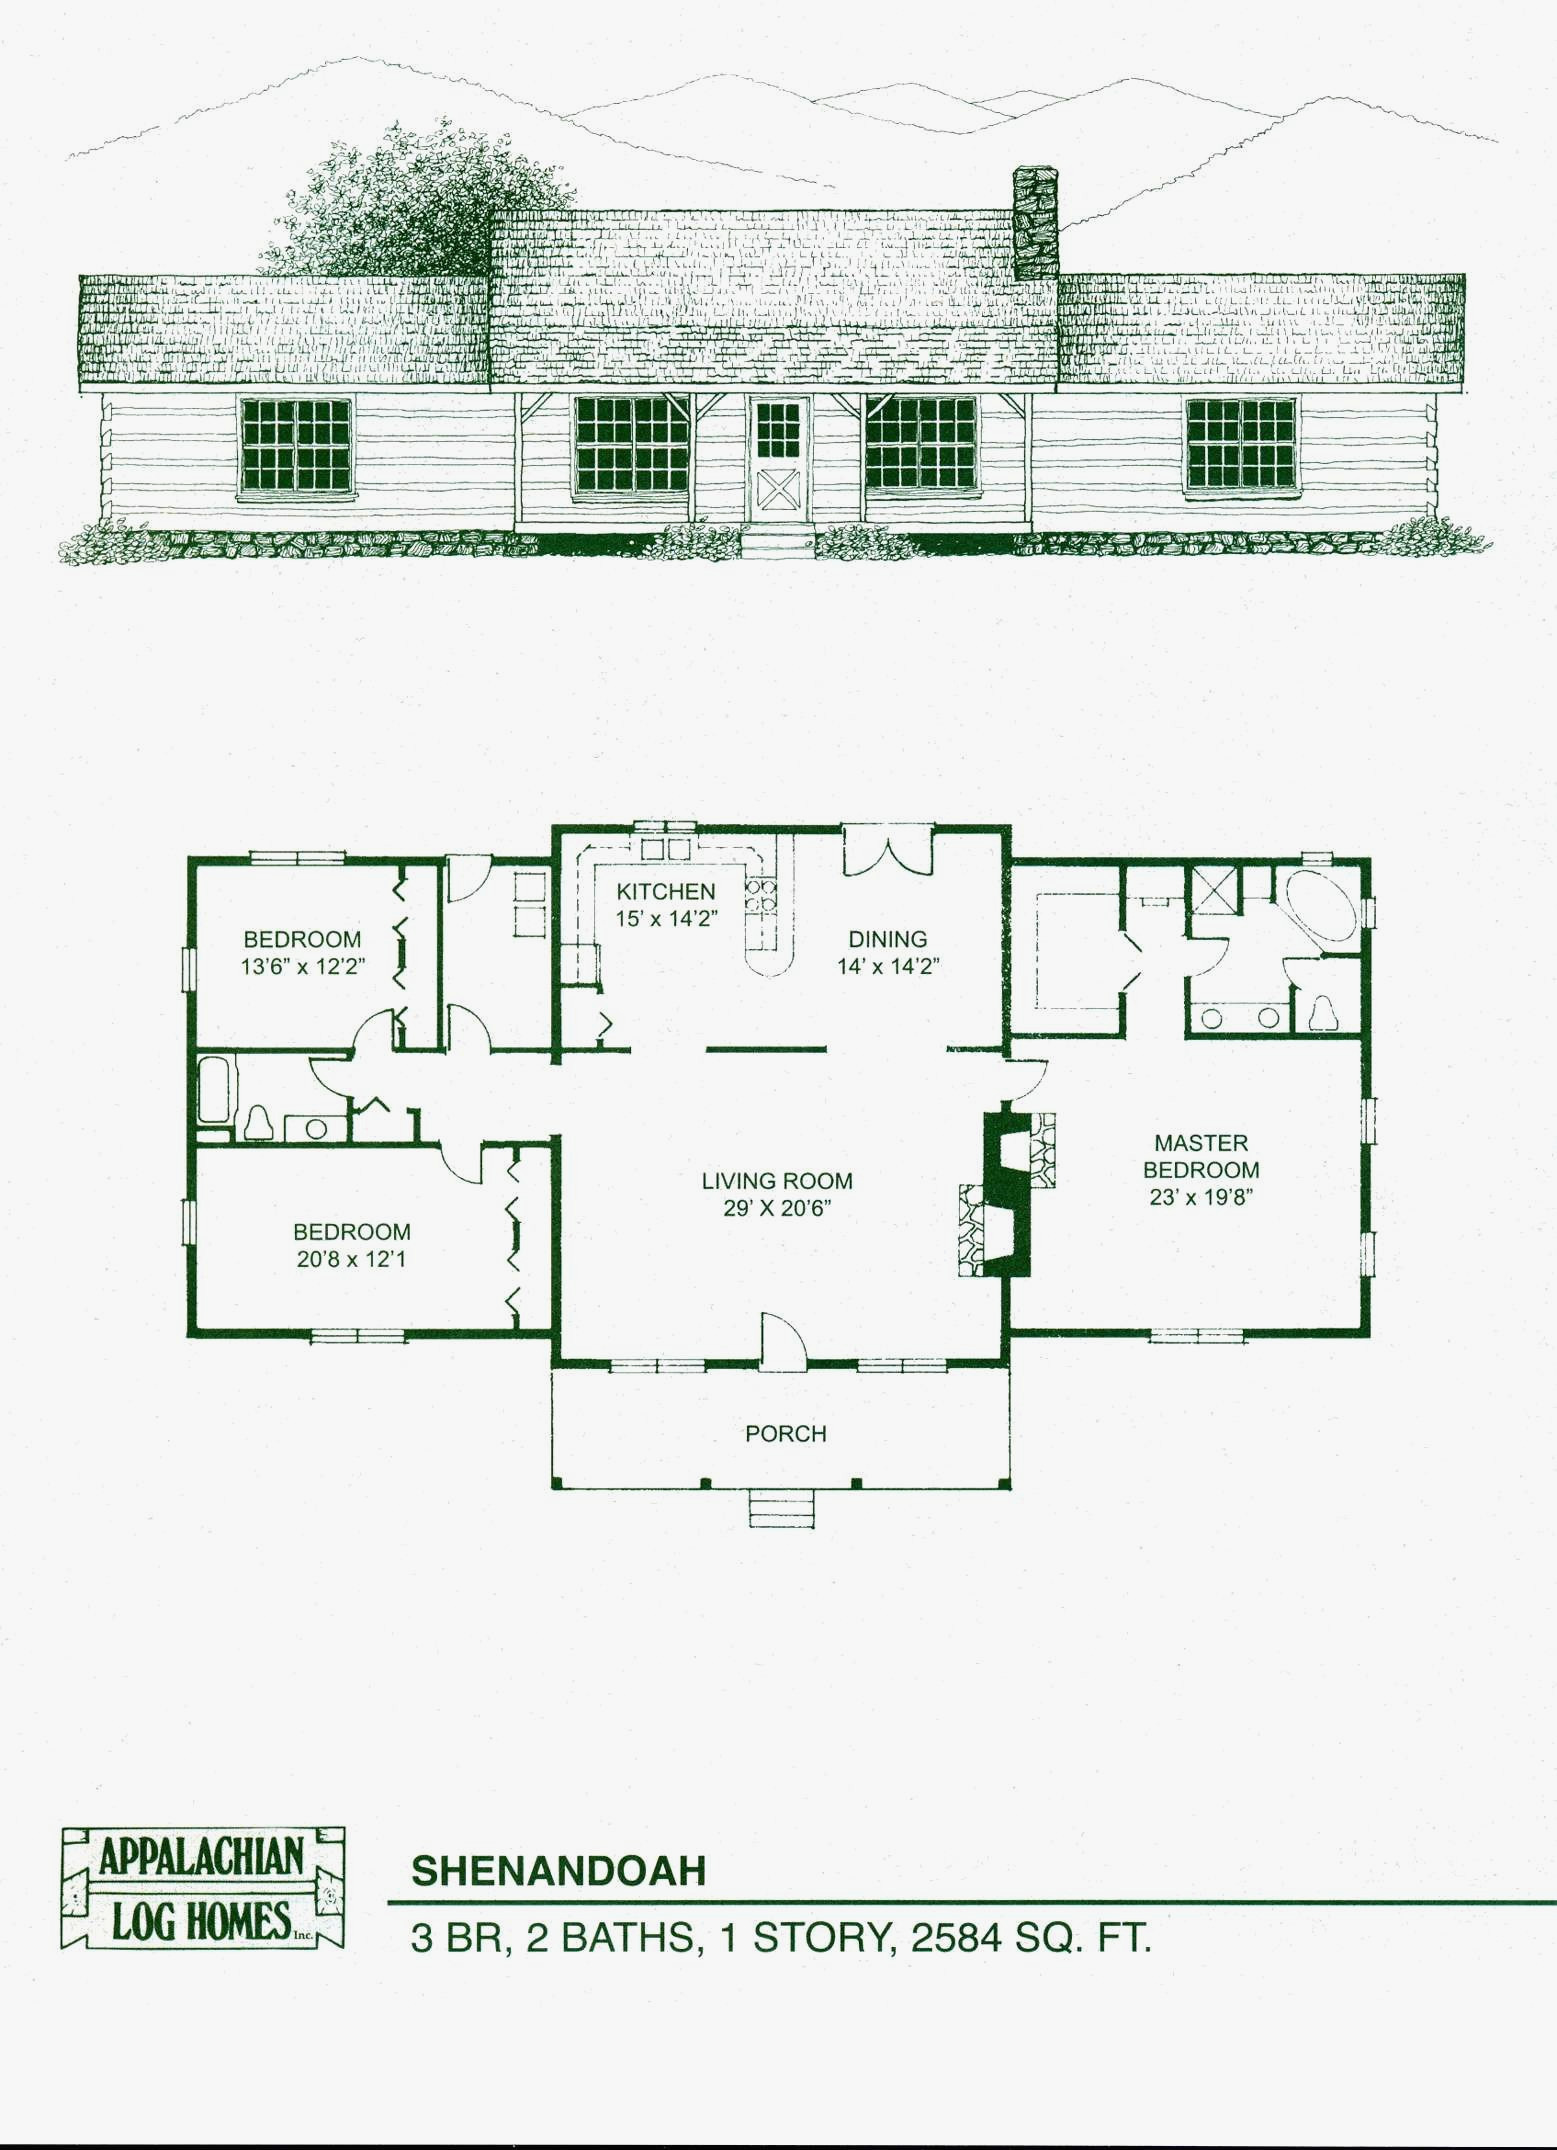 pole barn house designs with basements elegant pole barn houses floor plans superb pole barn house plans of pole barn house designs with basements